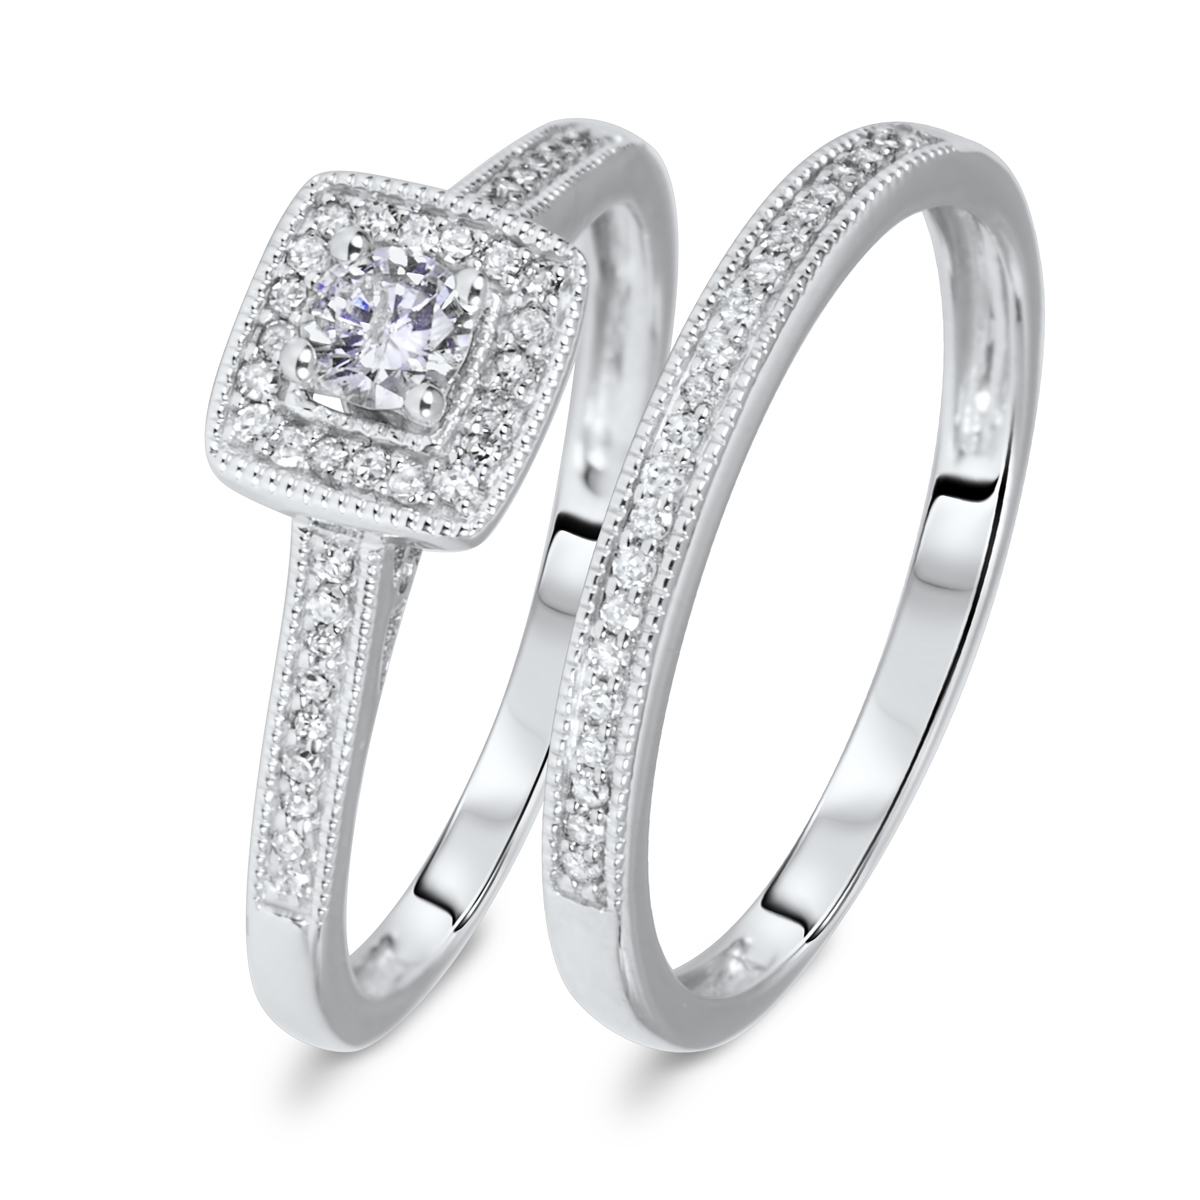 13 CT TW Round Cut Diamond Ladies Bridal Wedding Ring Set 14K